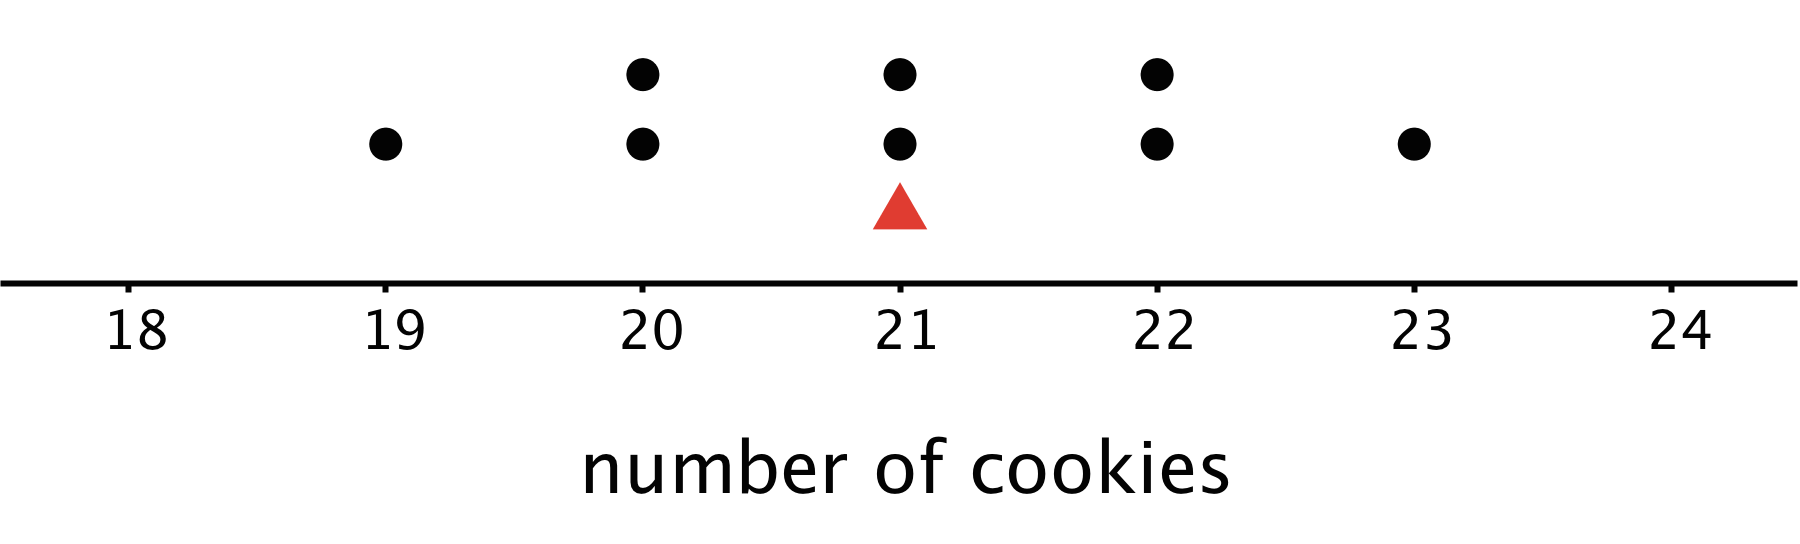 "Dot plot for ""number of cookies"". The numbers 18 through 24 are indicated. There is a triangle indicated at 21 cookies. The data are as follows:  18 cookies, 0 dots. 19 cookies, 1 dot. 20 cookies, 2 dots. 21 cookies, 2 dots. 22 cookies, 2 dots. 23 cookies, 1 dot. 24 cookies, 0 dots."